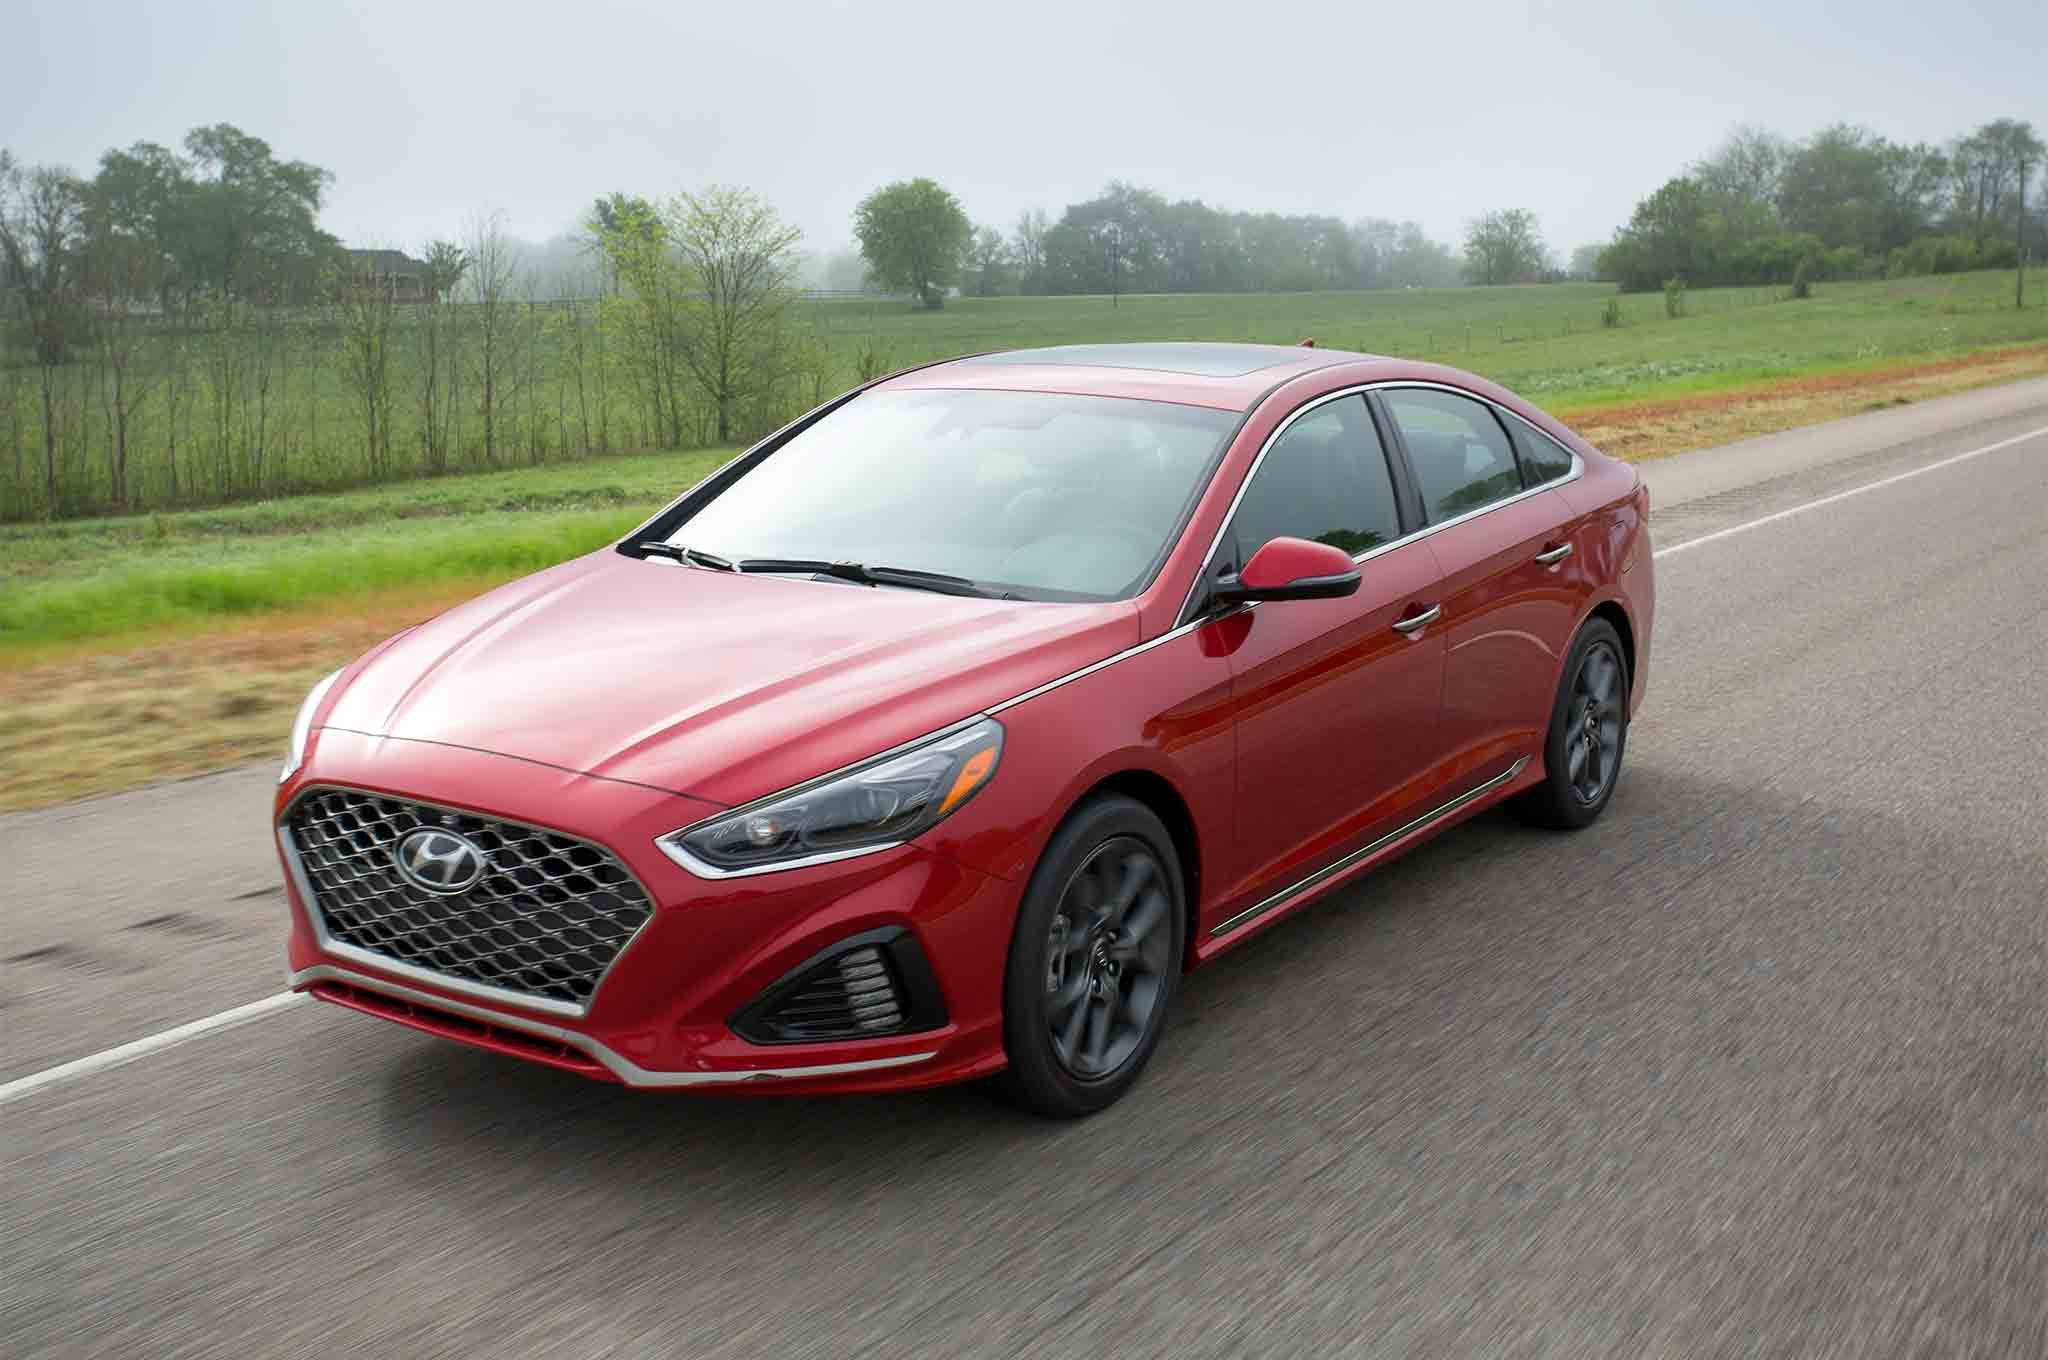 2018 Hyundai Sonata 20T Front Three Quarter In Motion 02